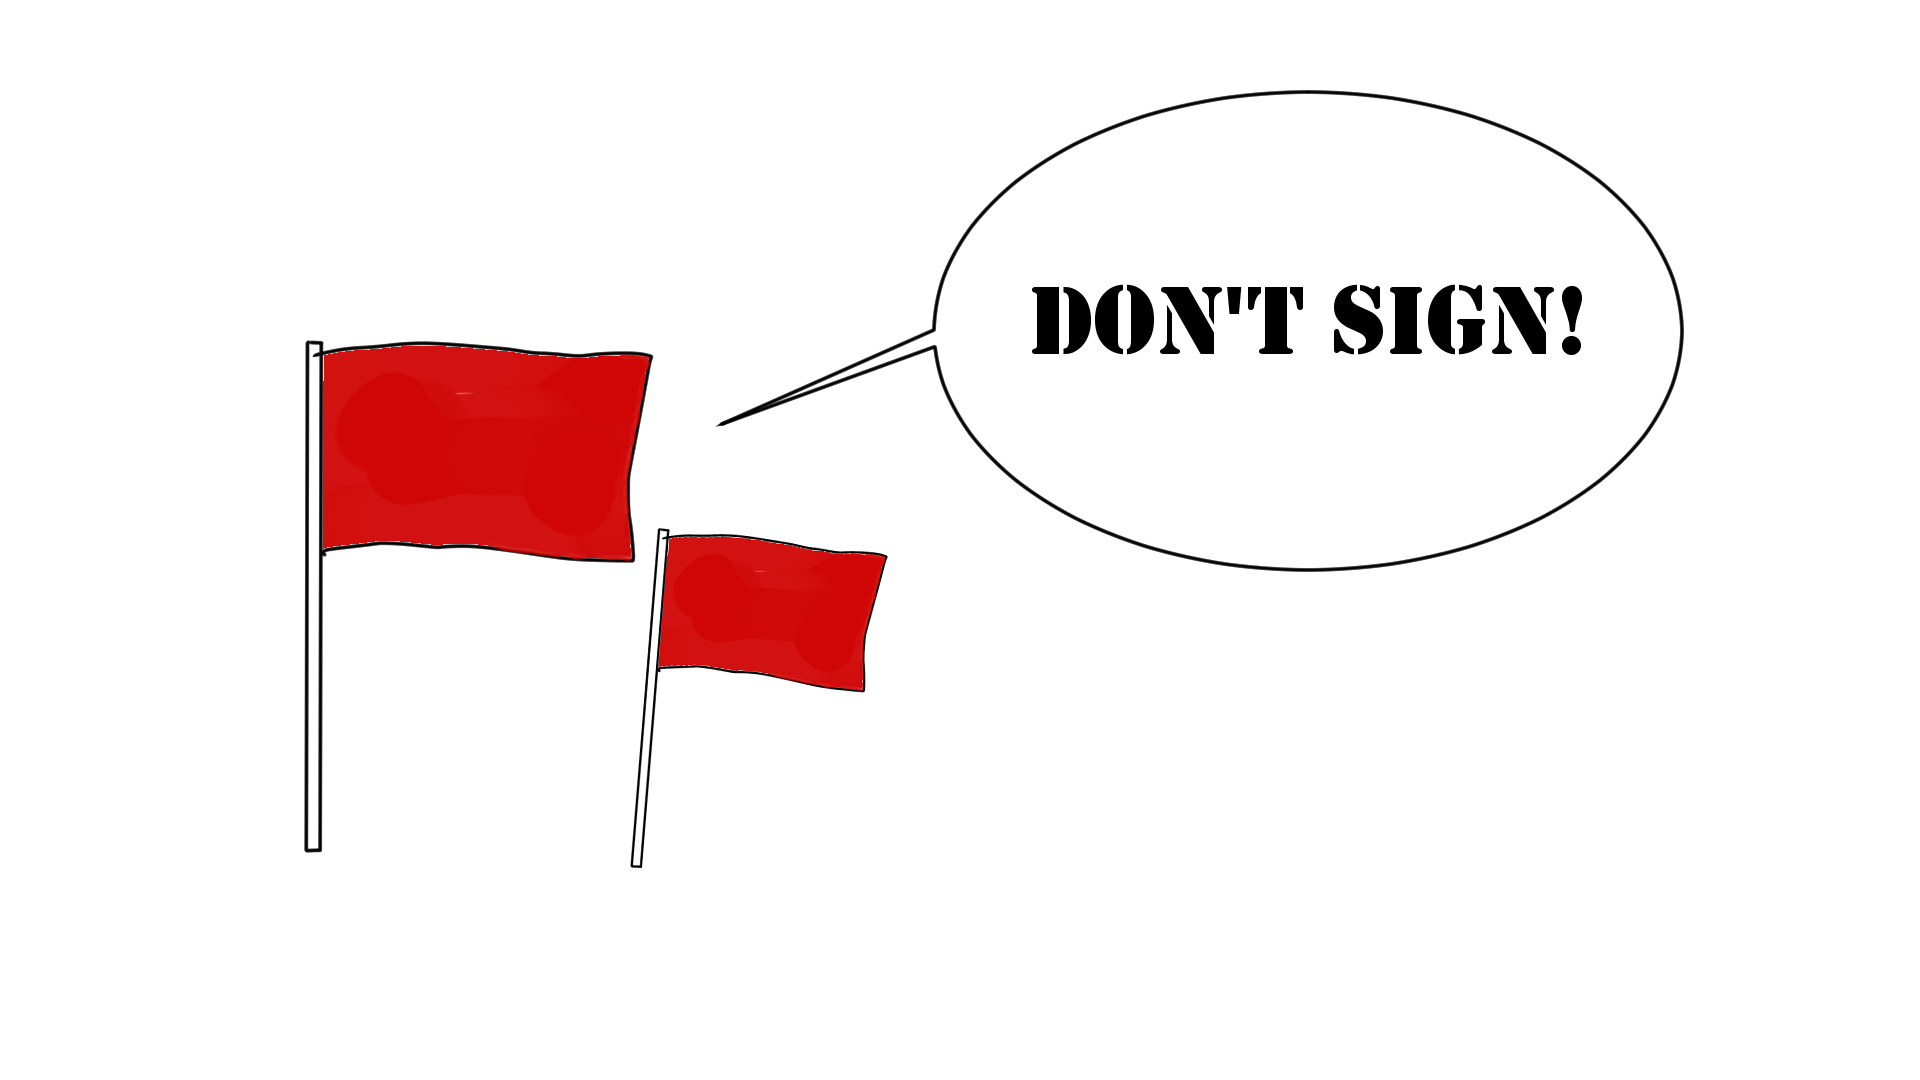 A red flag that warns you about signing the contract.